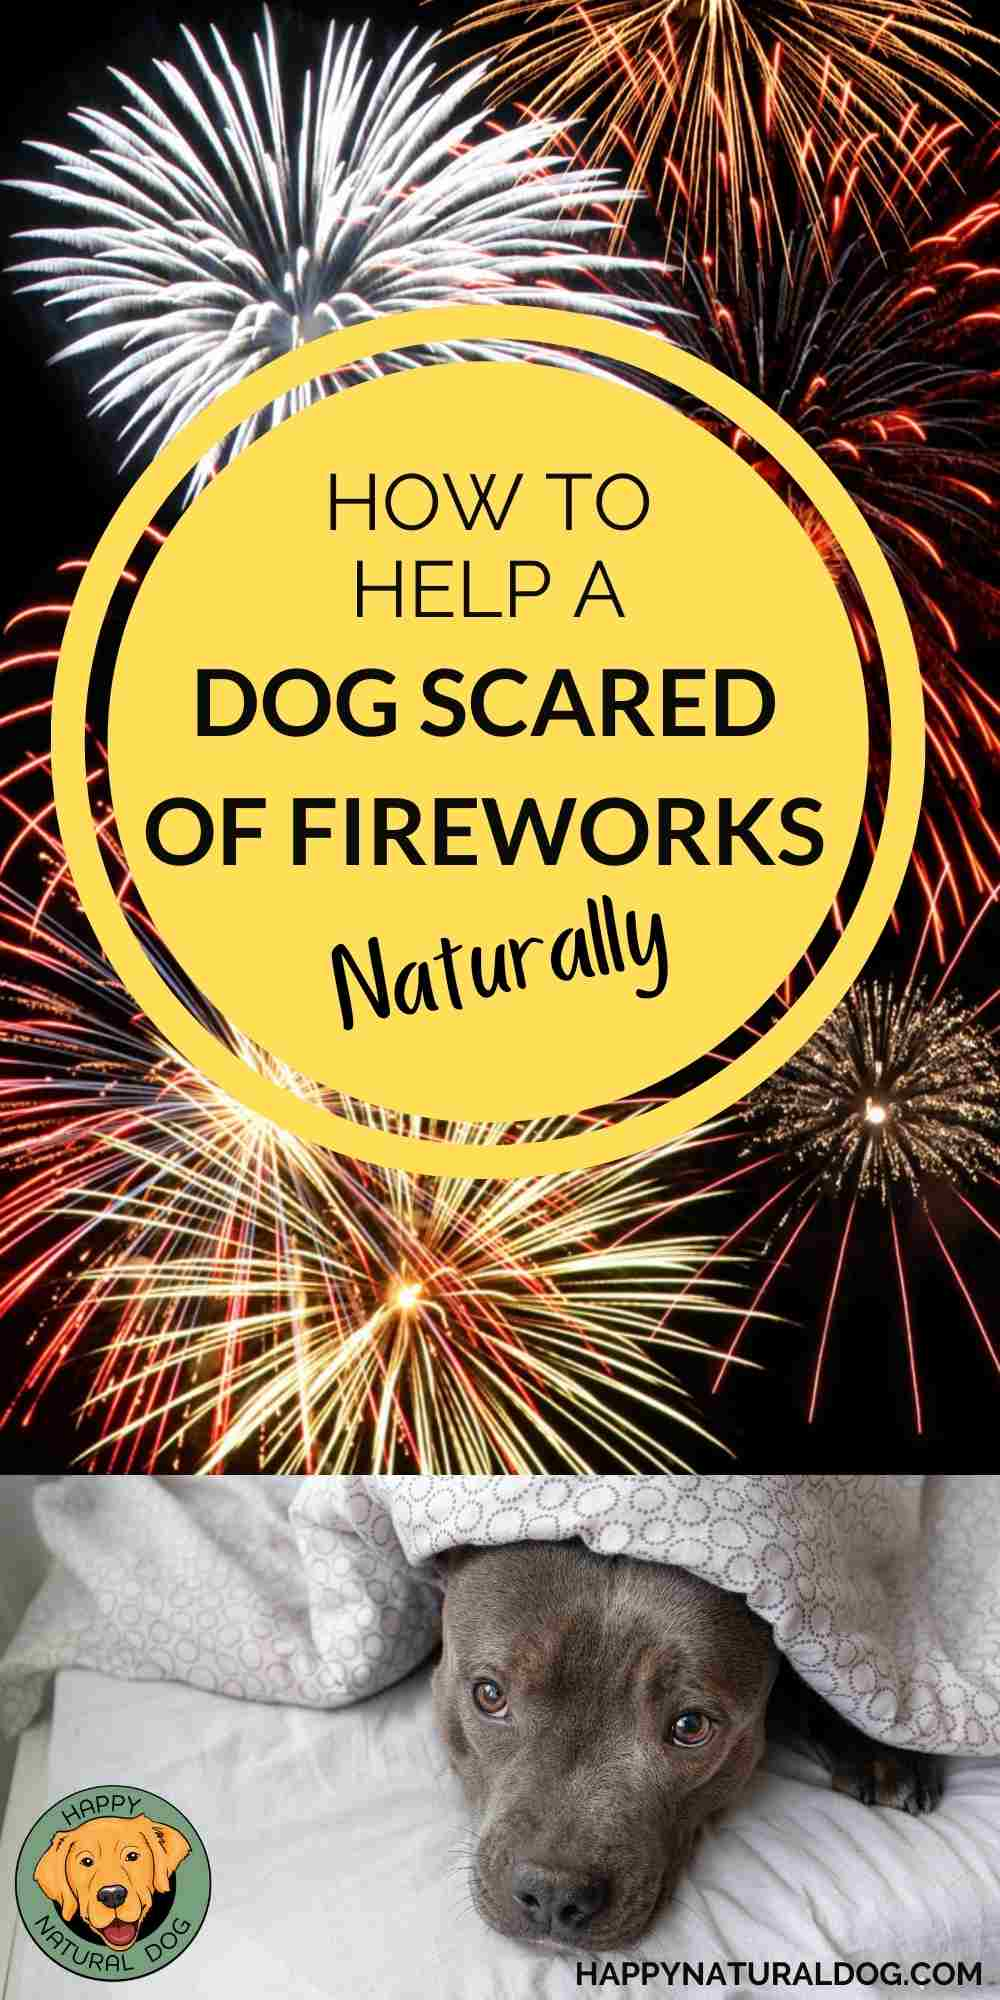 How to Help a dog scared of fireworks